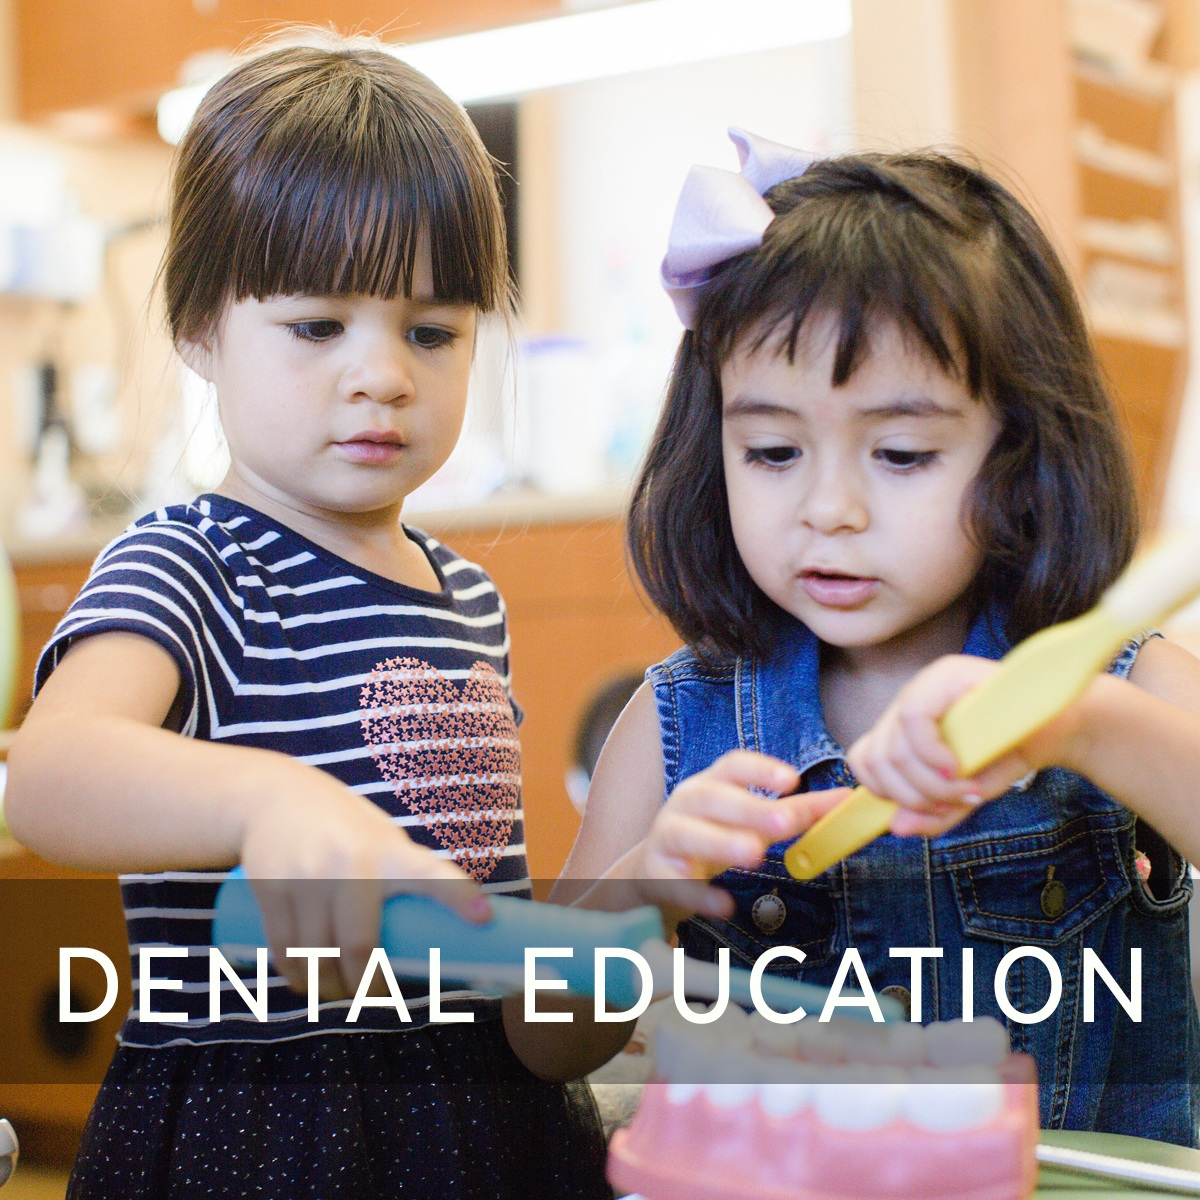 DENTAL EDUCATION.jpg